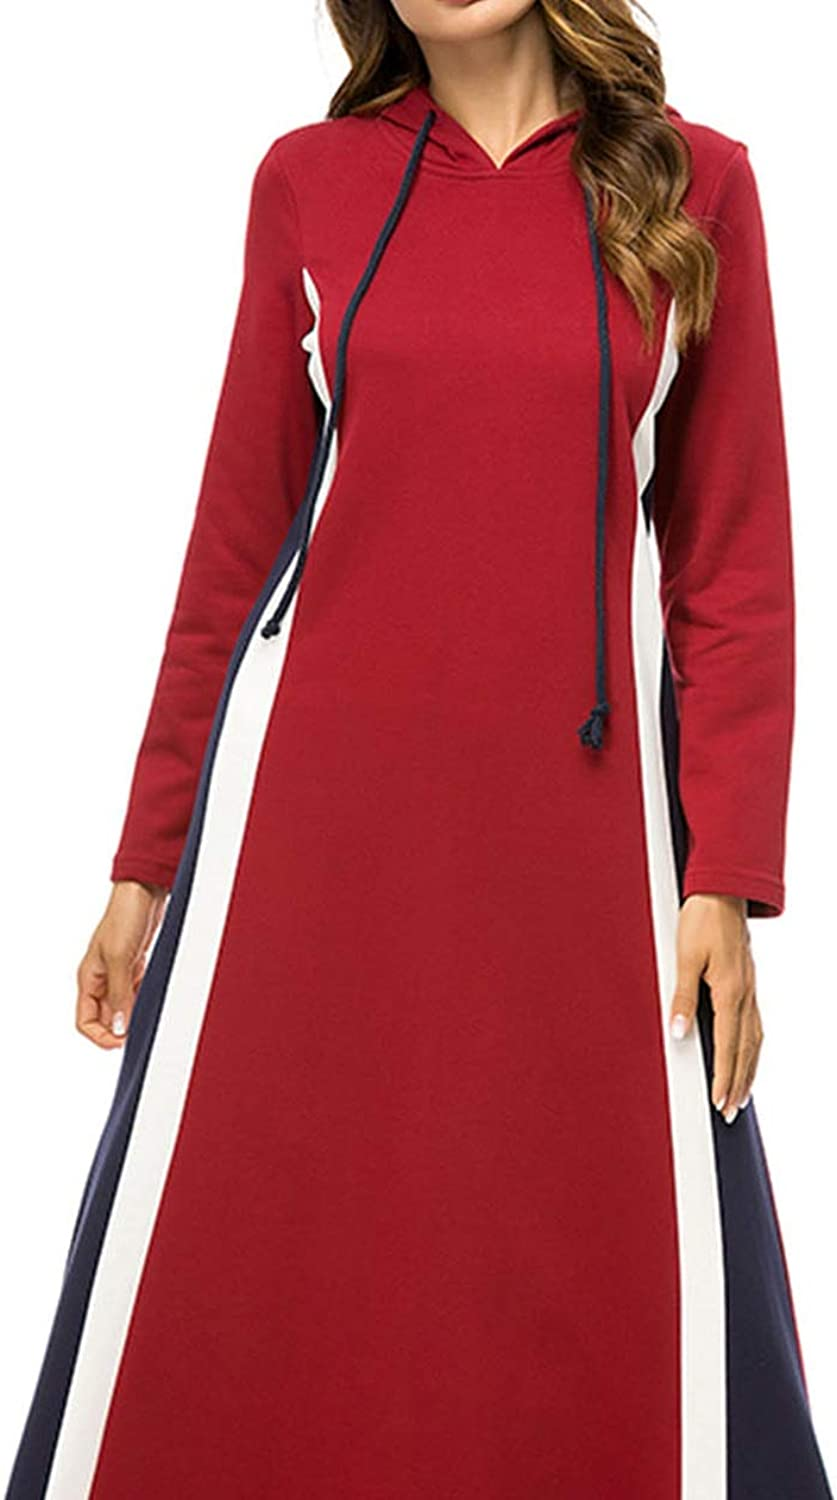 40673e1796b Mexican Clothing Co Womens Mexican Blouse Traditional San Andres Waist Loom  MayCmelo dresses Contrast Hooded Cotton Long Dress